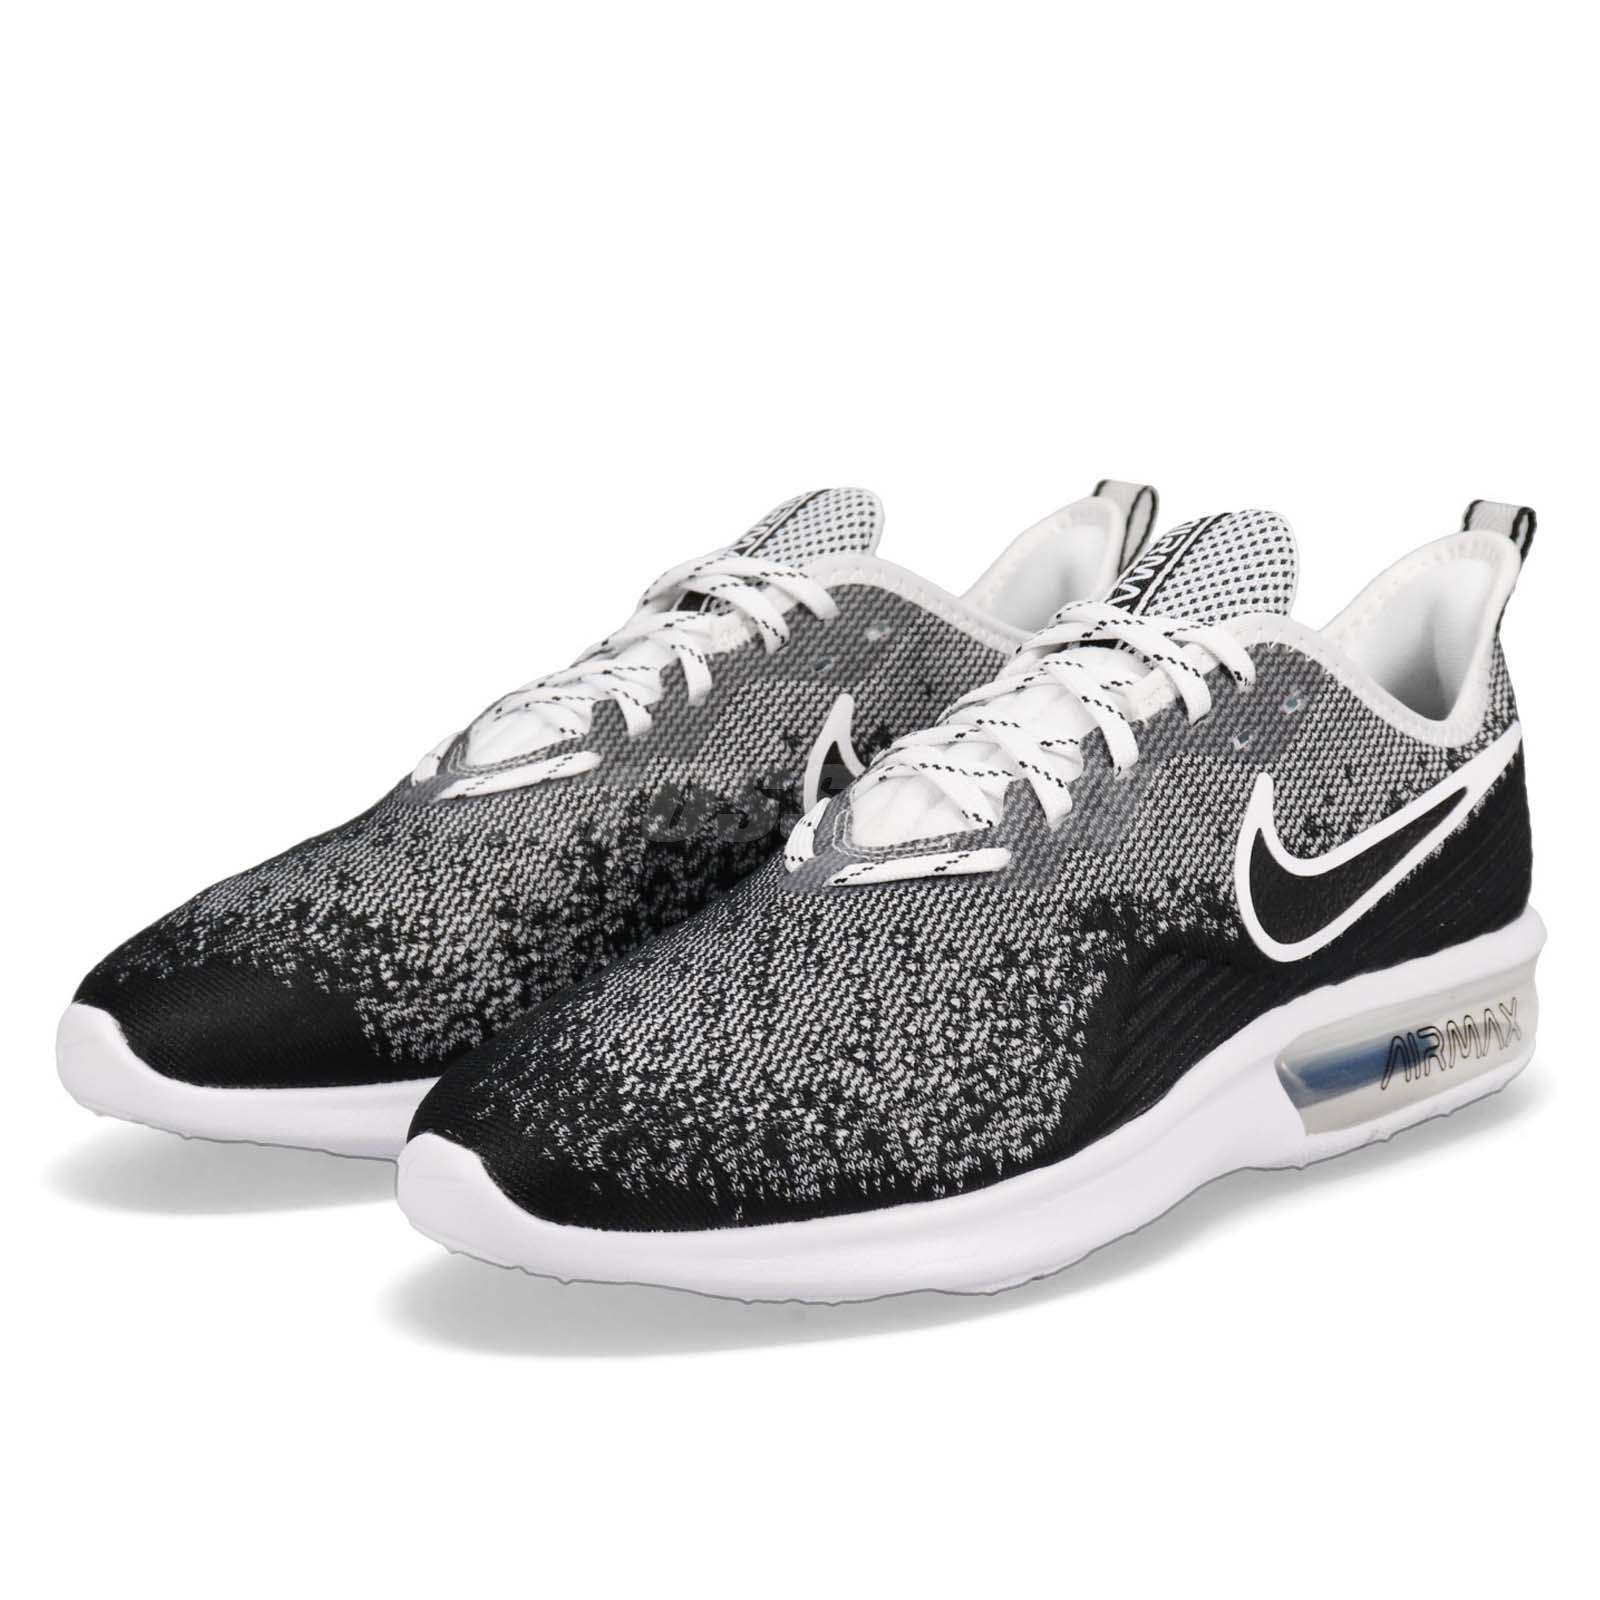 promo code 0e34f 4d4bb Details about Nike Air Max Sequent 4 IV Black White Men Running Shoes  Sneakers AO4485-001